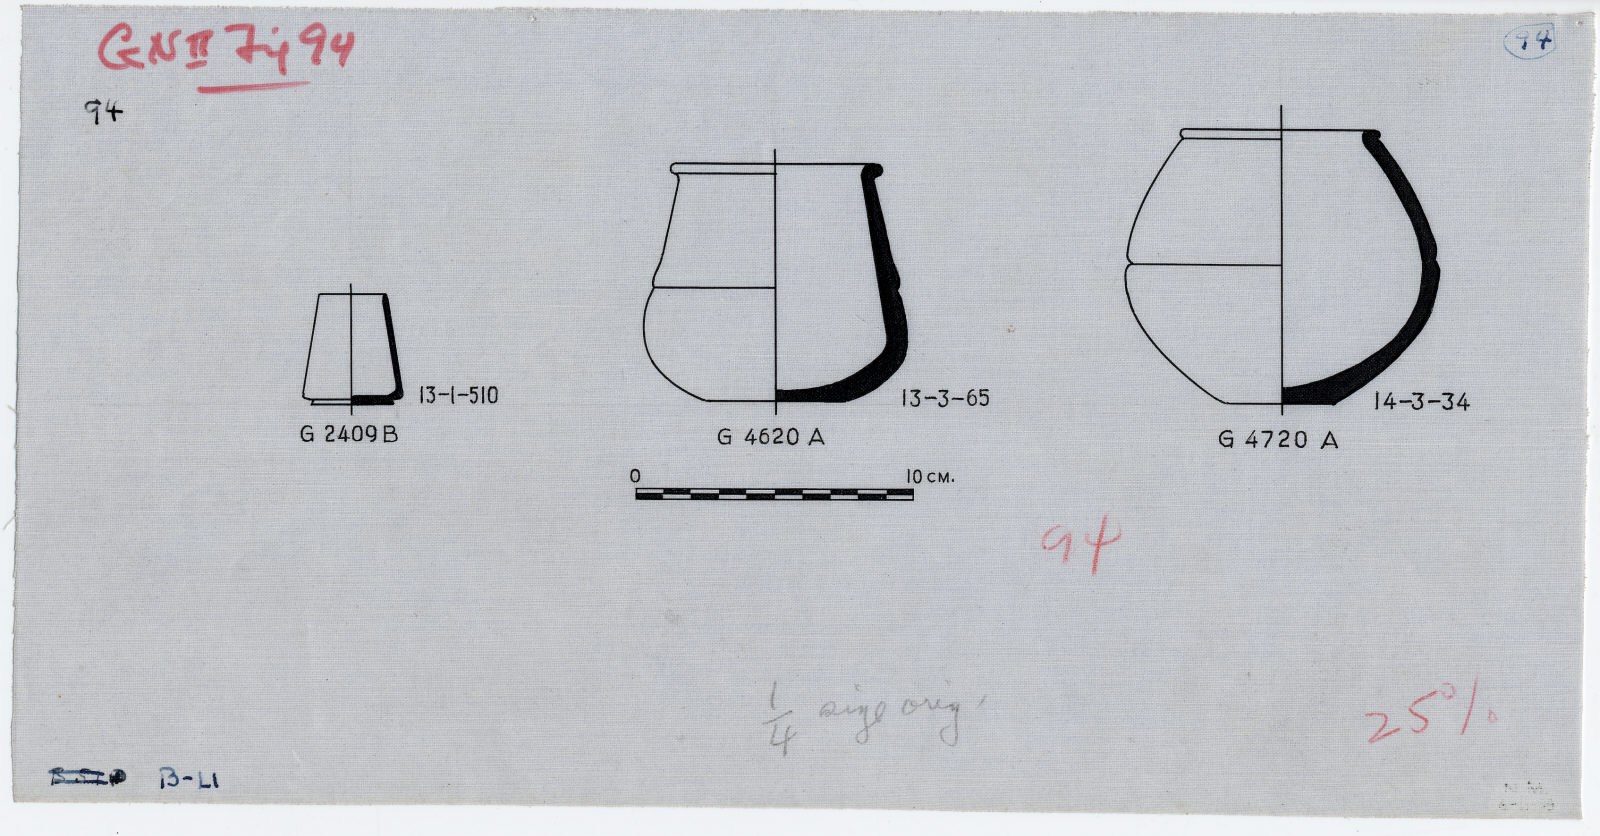 Drawings: Pottery jars from G 2409, G 4620, G 4720